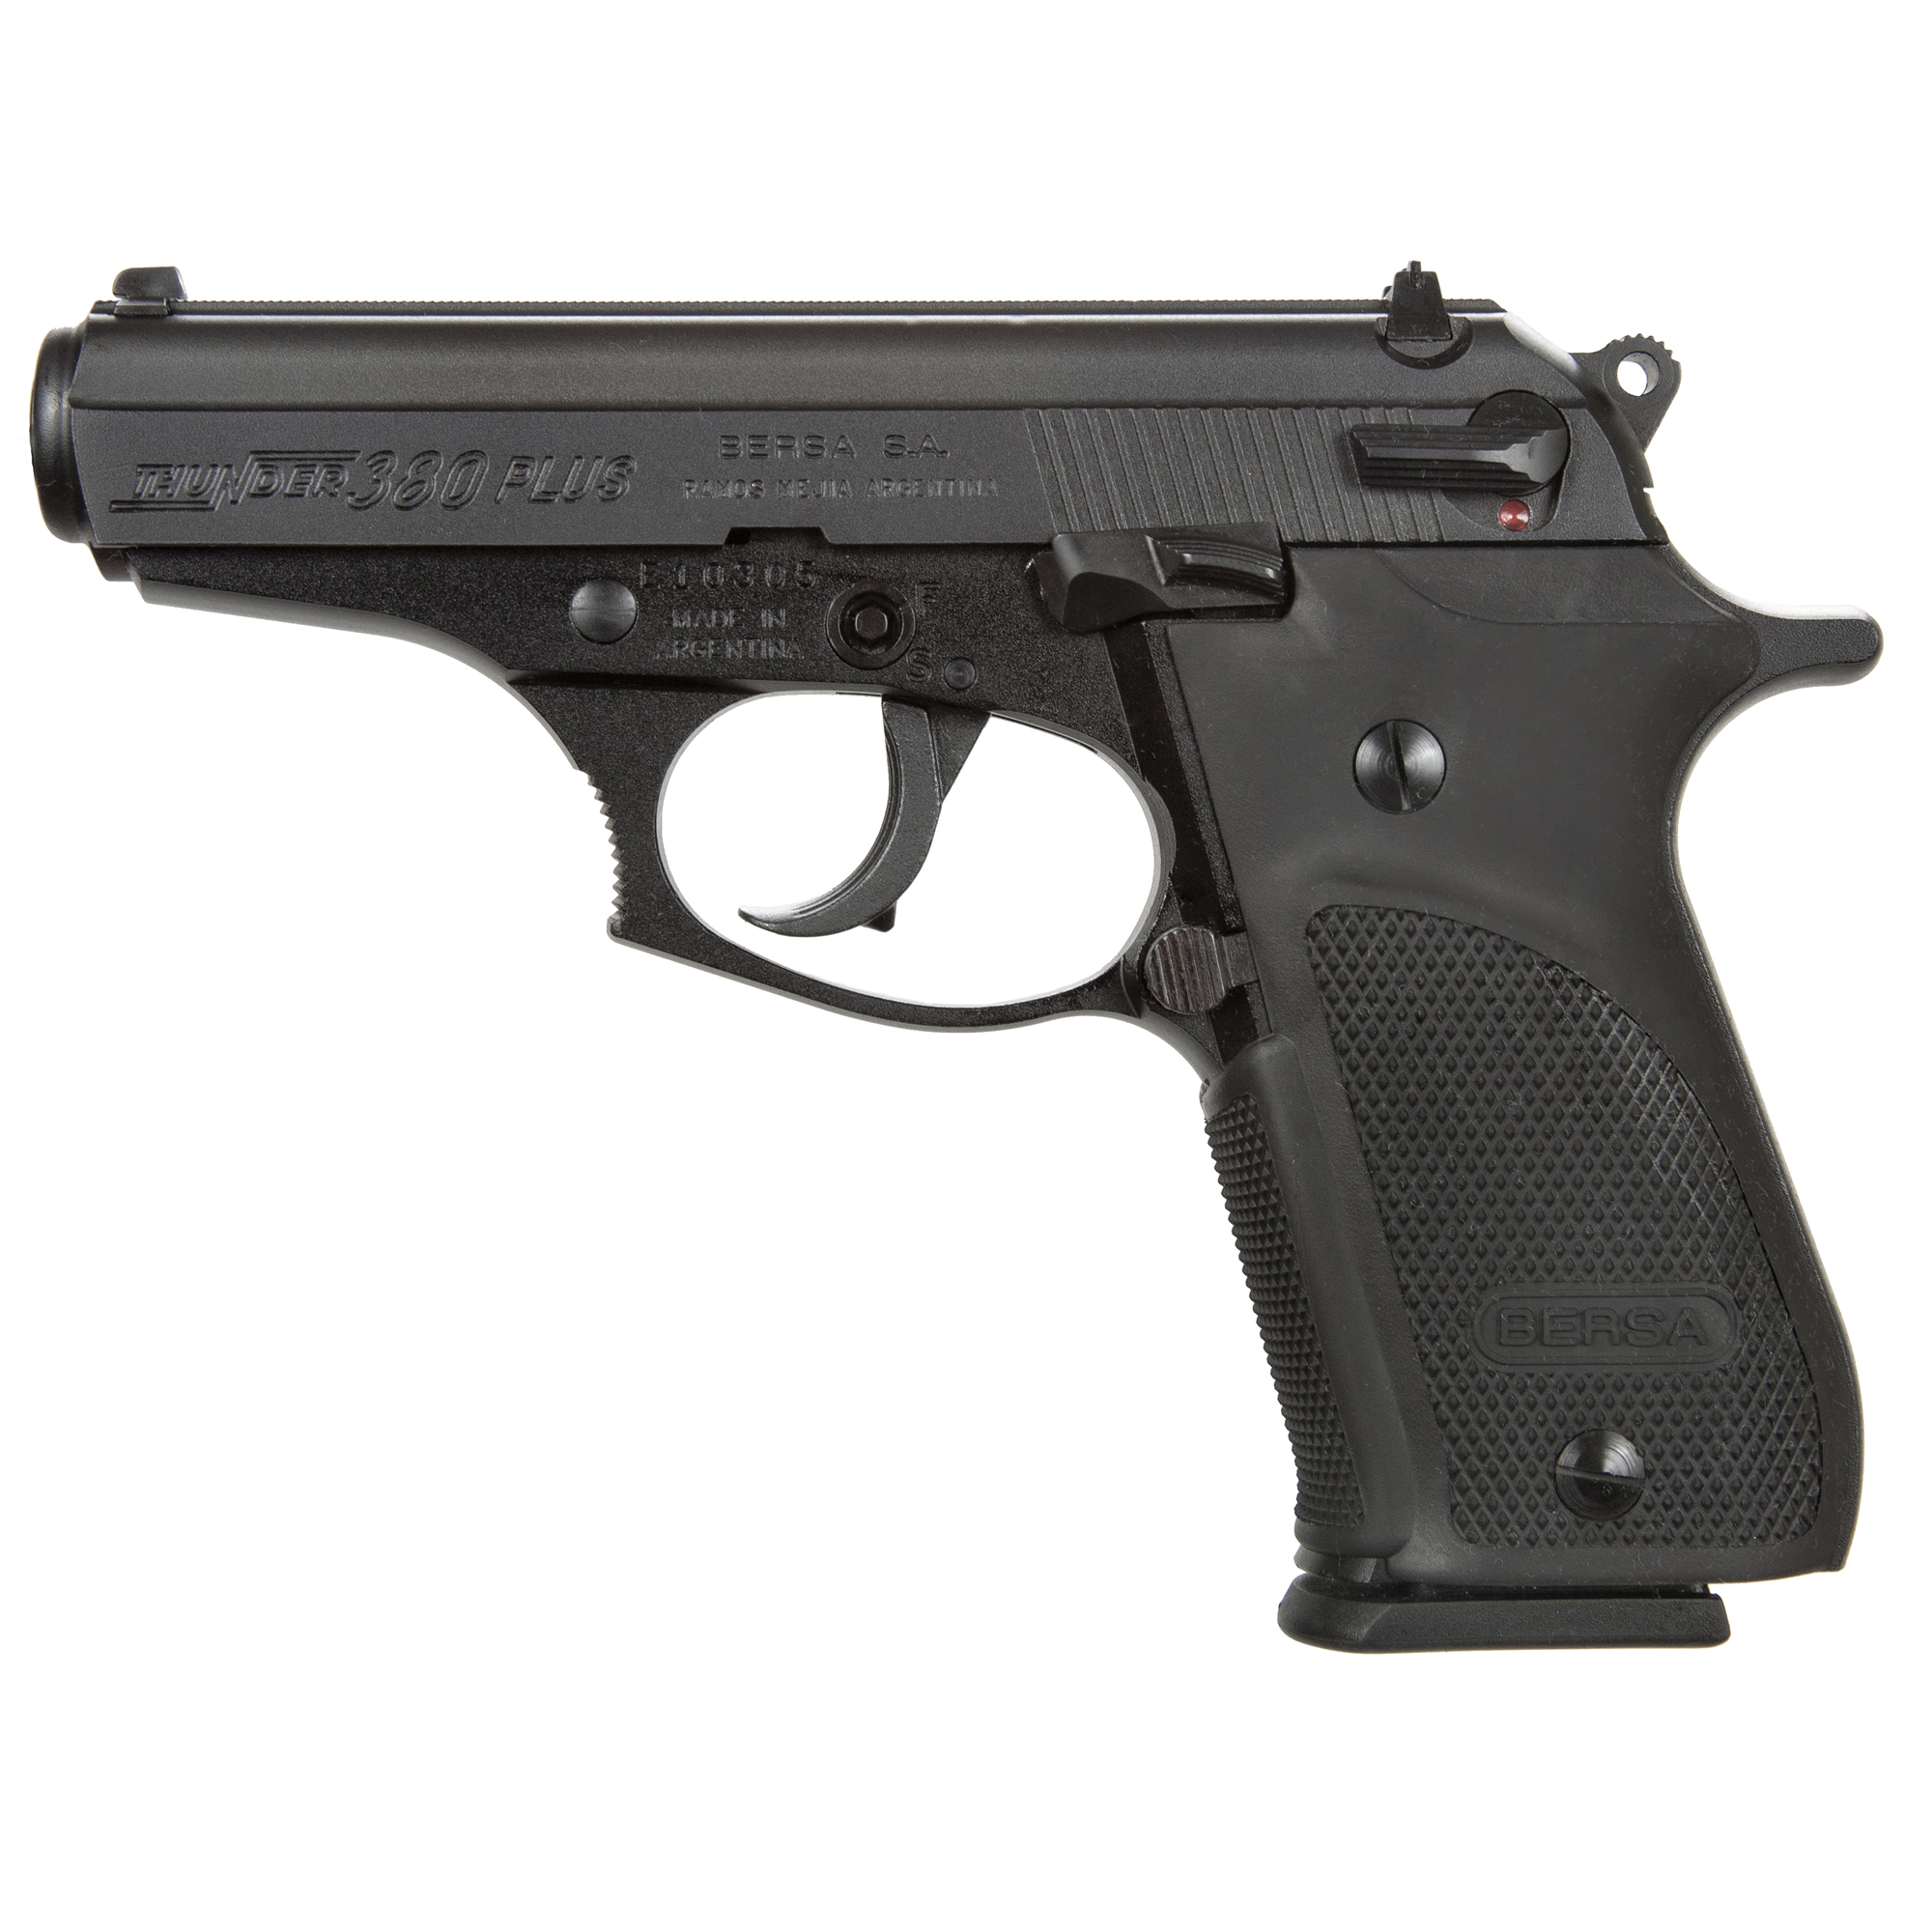 "The Bersa Thunder Series has been designed to deliver pinpoint accuracy and rugged reliability under the toughest conditions. The Bersa Thunder offers numerous valued features - accuracy"" reliability and versatility in a lightweight"" compact design."